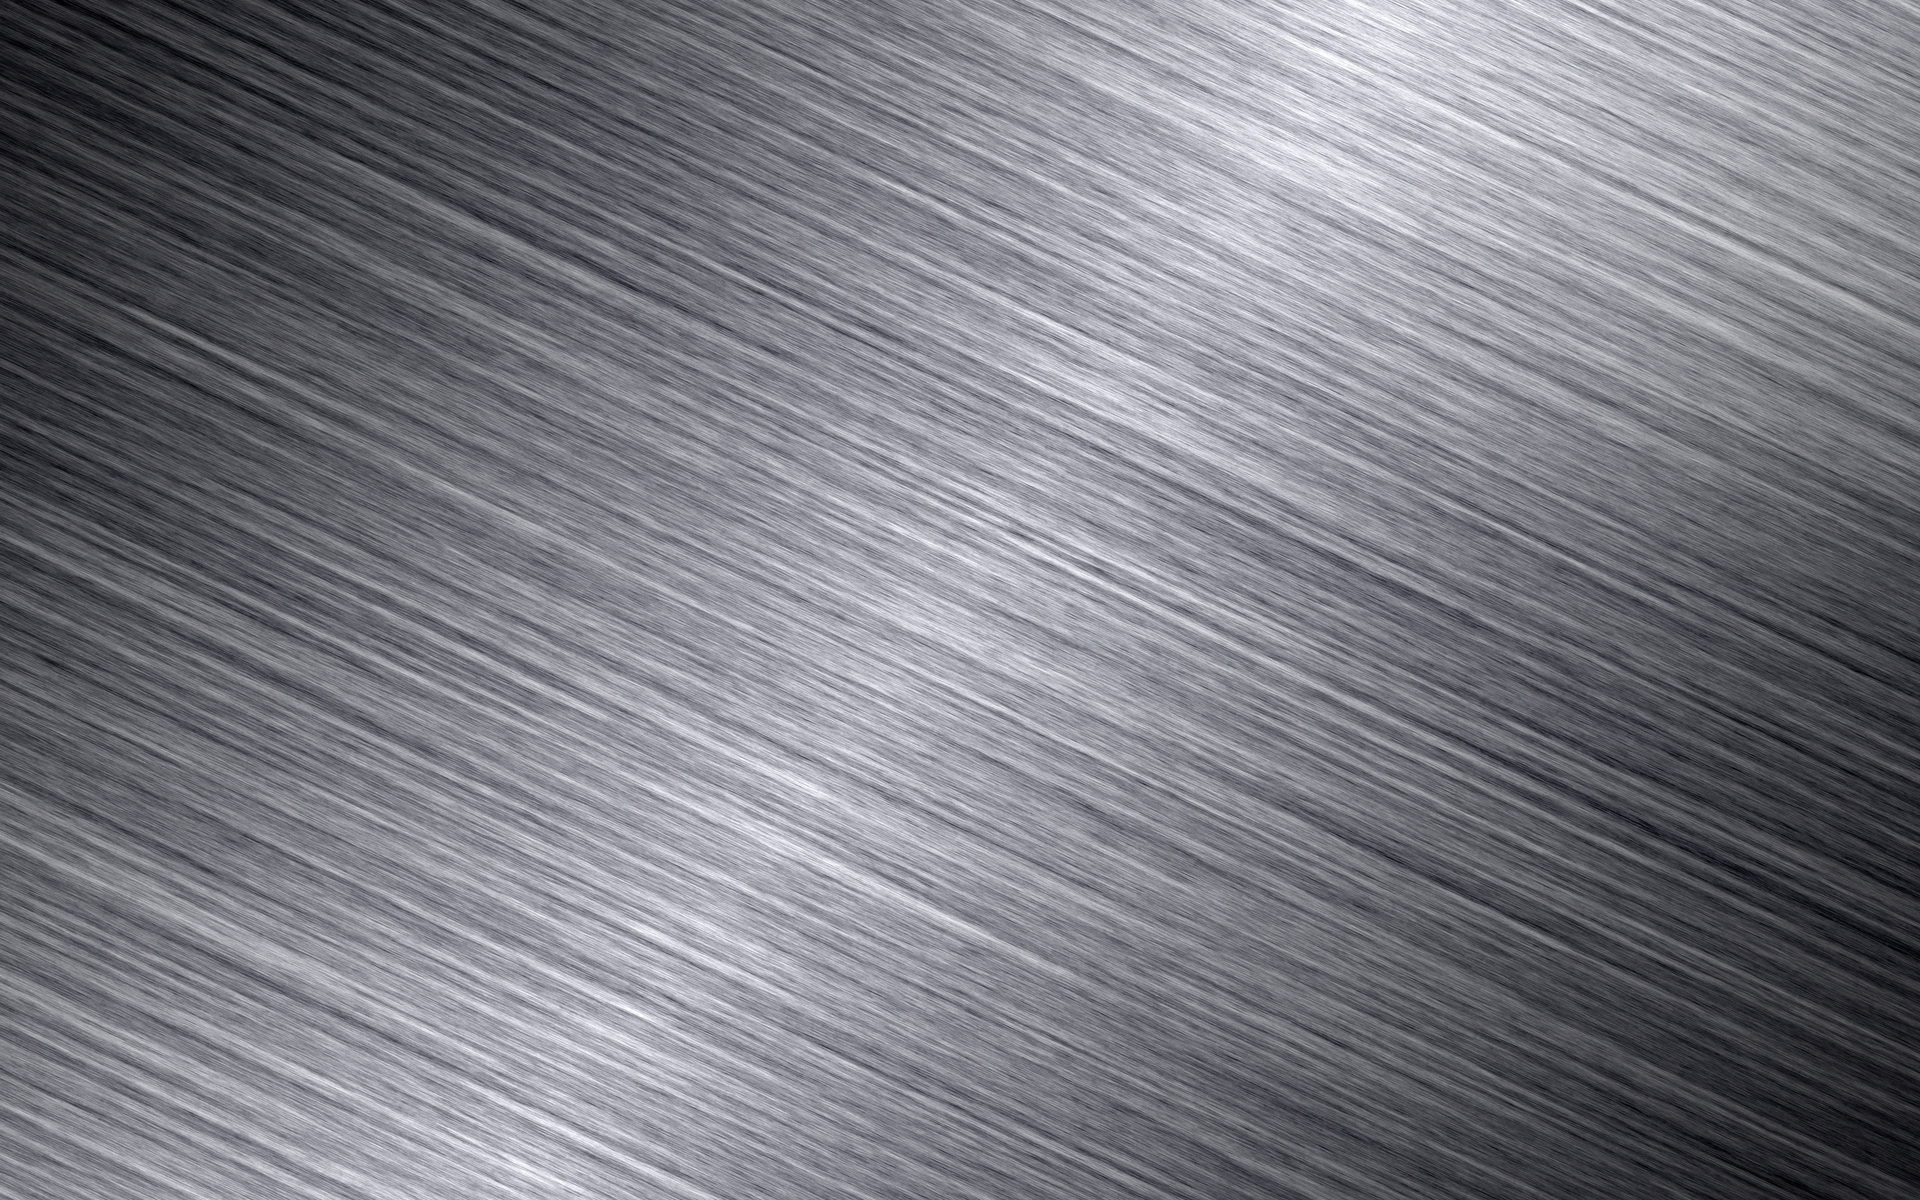 aluminium background texture, aluminum, texture, metal, download ...: bgfons.com/download/1784